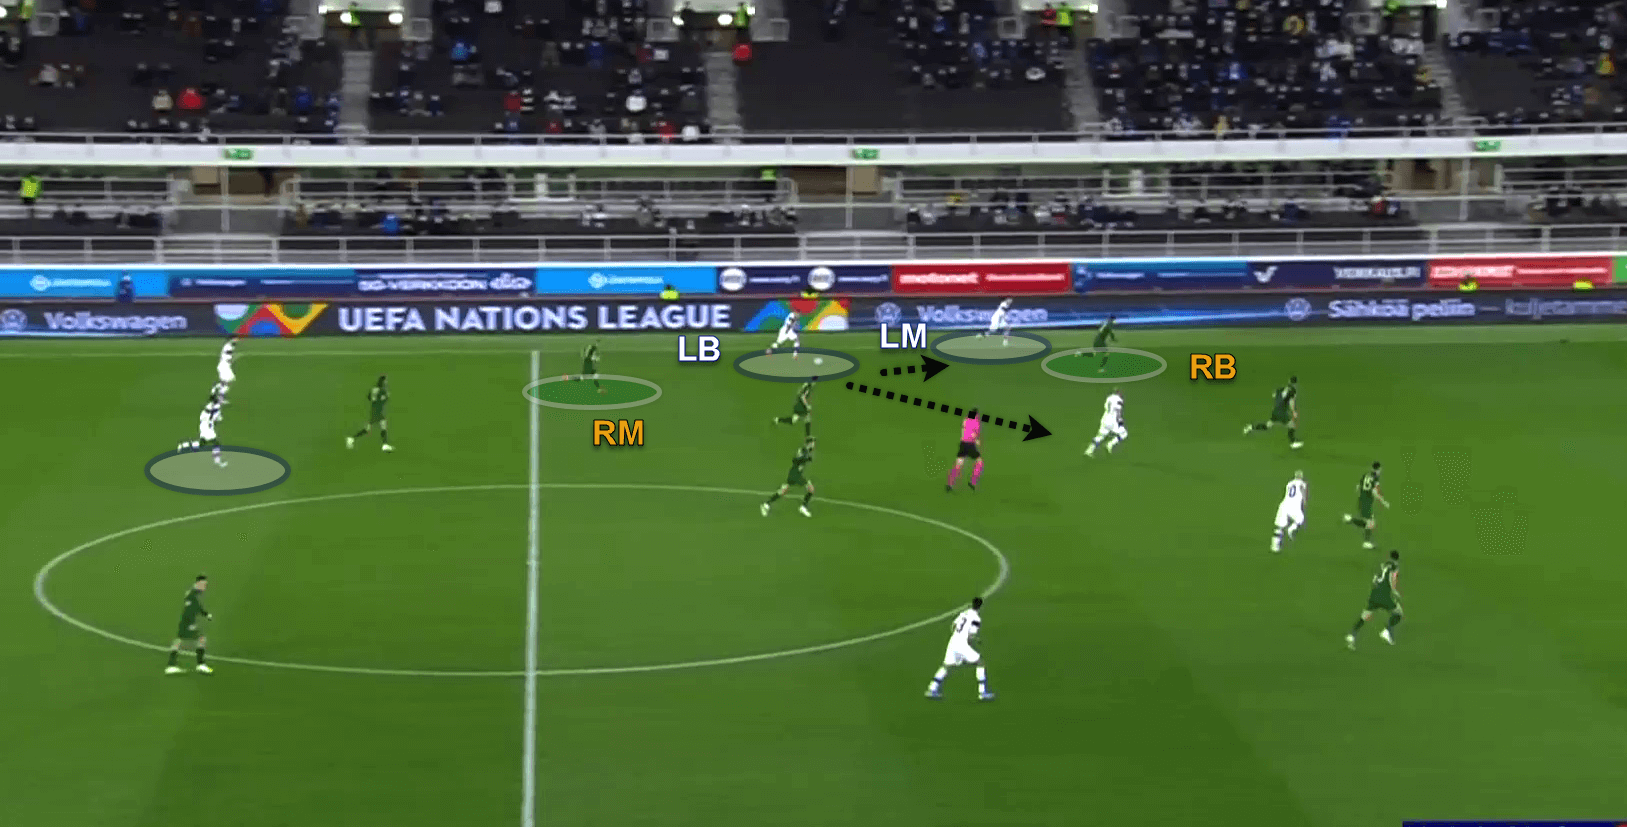 UEFA Nations League 2020/21: Finland v Ireland - tactical analysis analysis